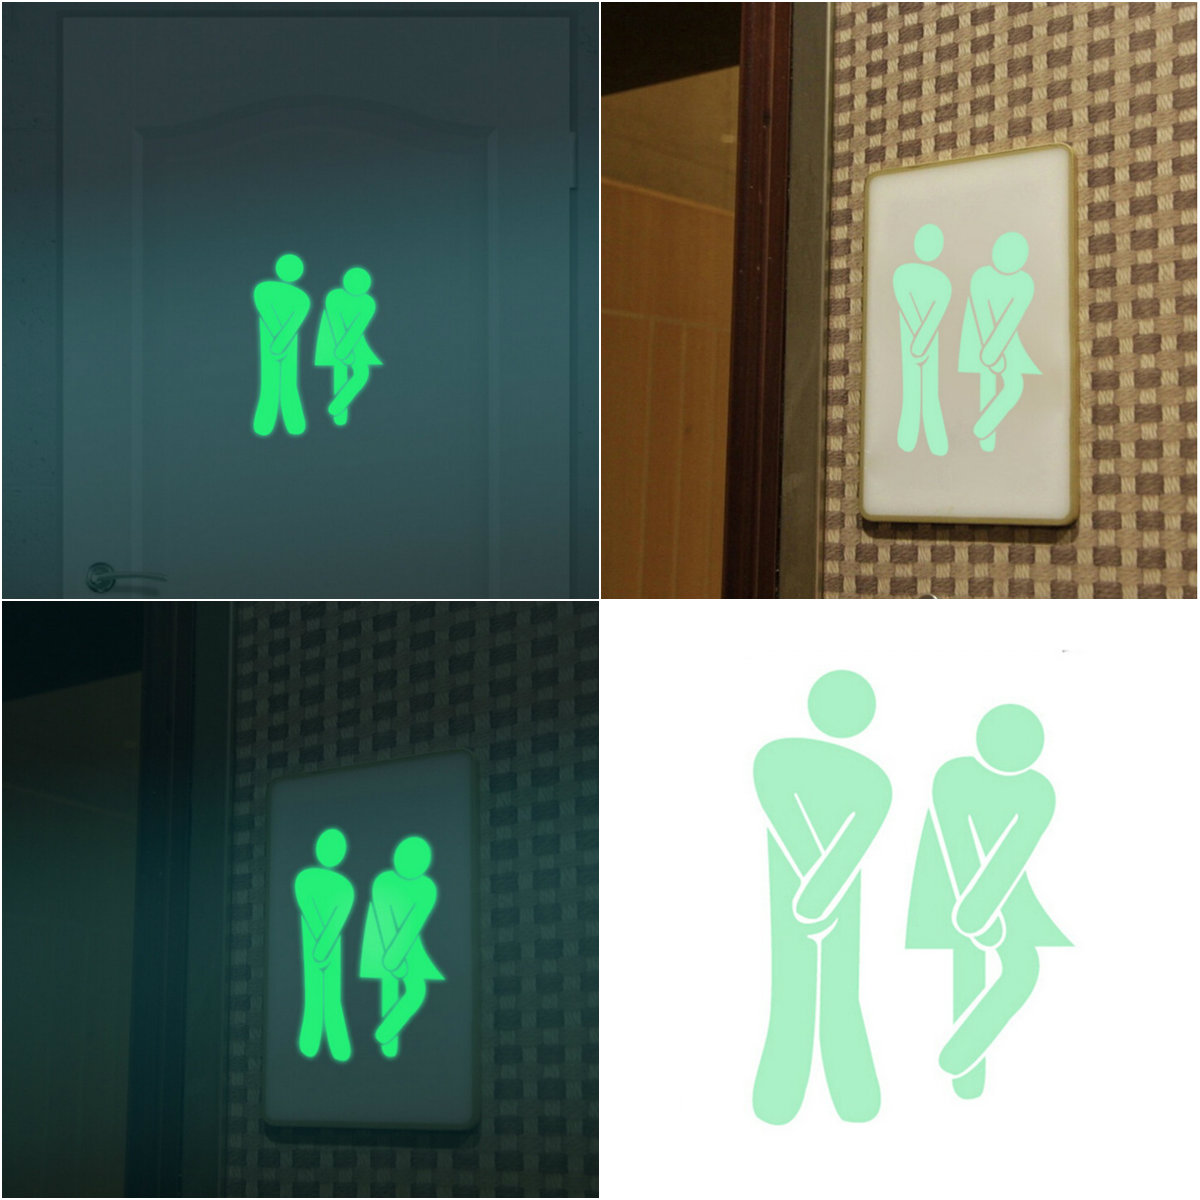 Hot Sell Funny Luminous Glow In The Dark Wallpaper Toilet Stickers Vinyl Wall Art Decals For Home Decor  DIY3D Good Quality